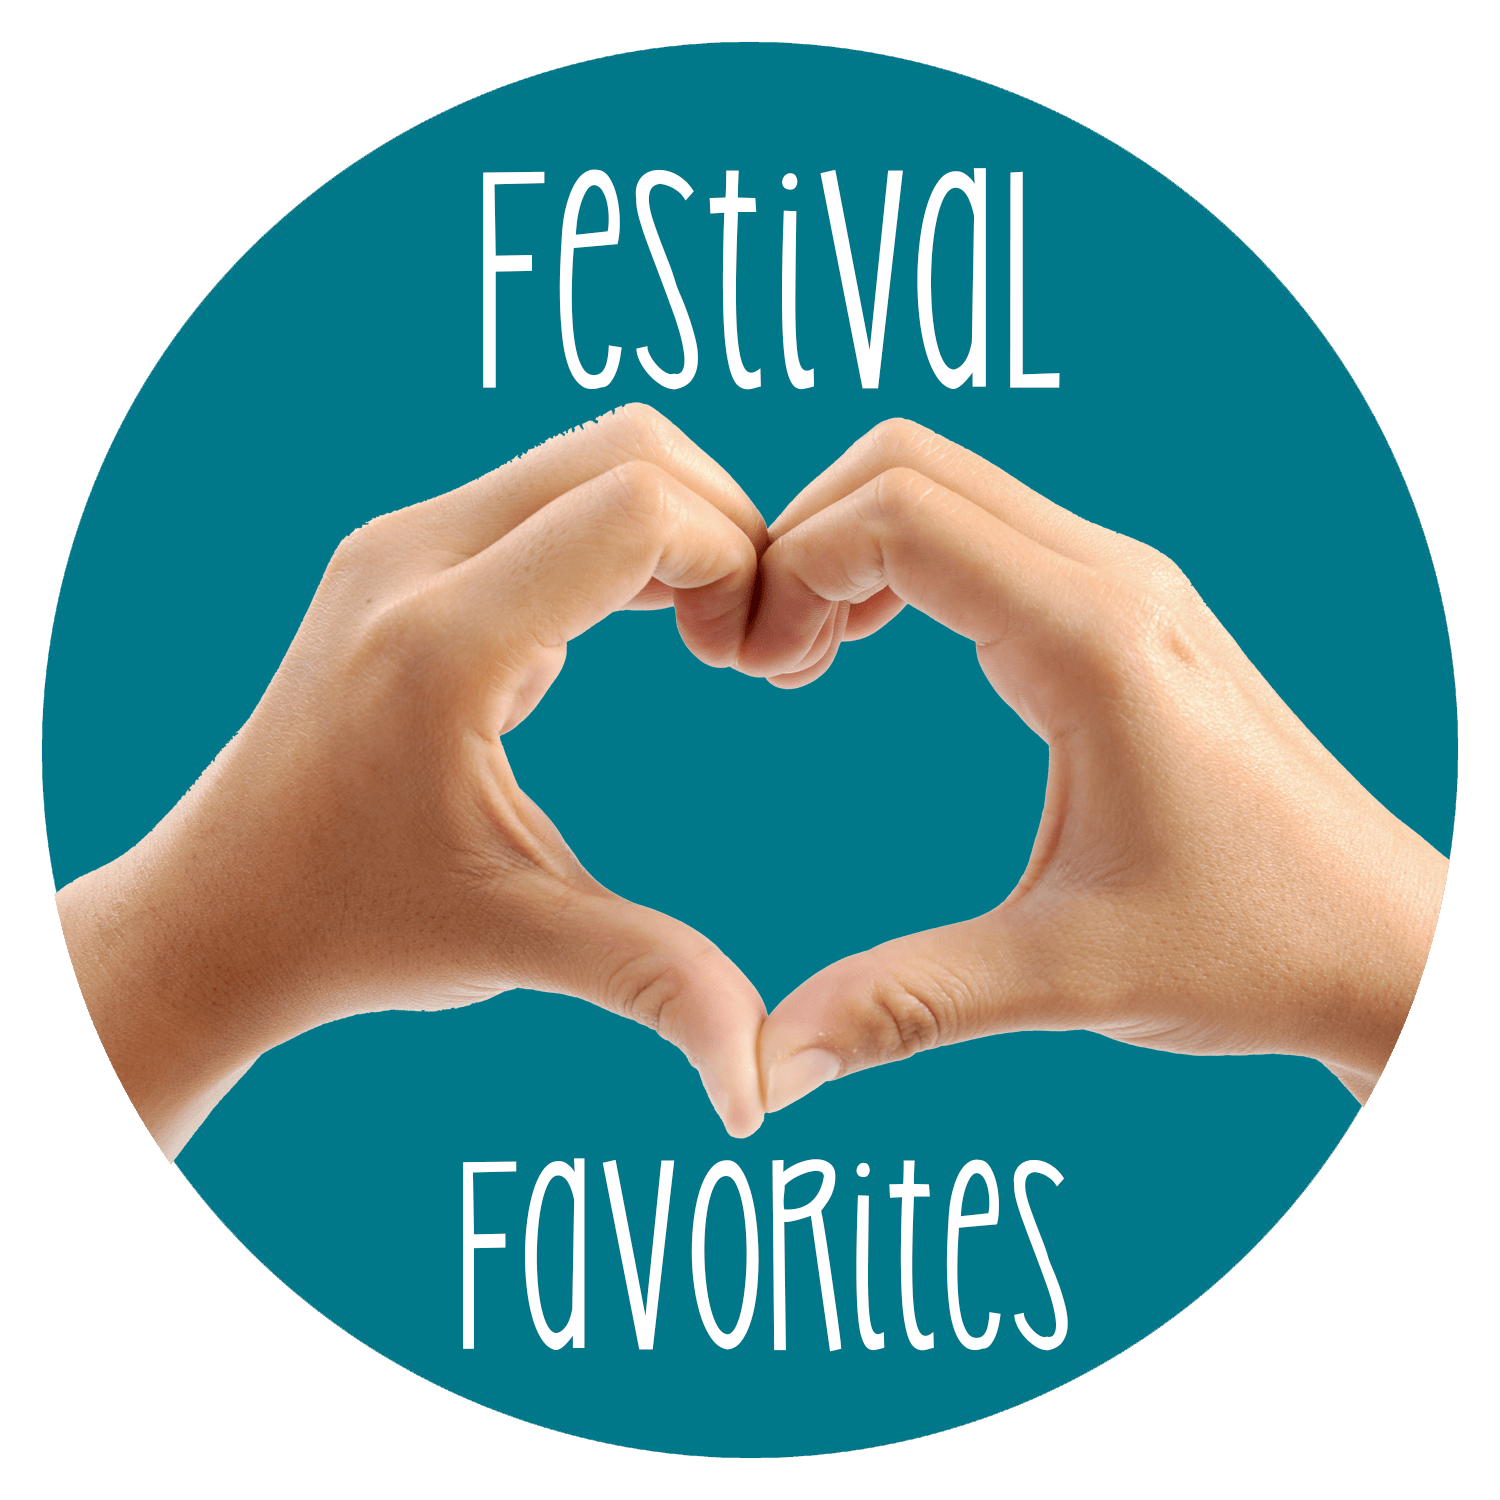 Festival Favorites Button.png